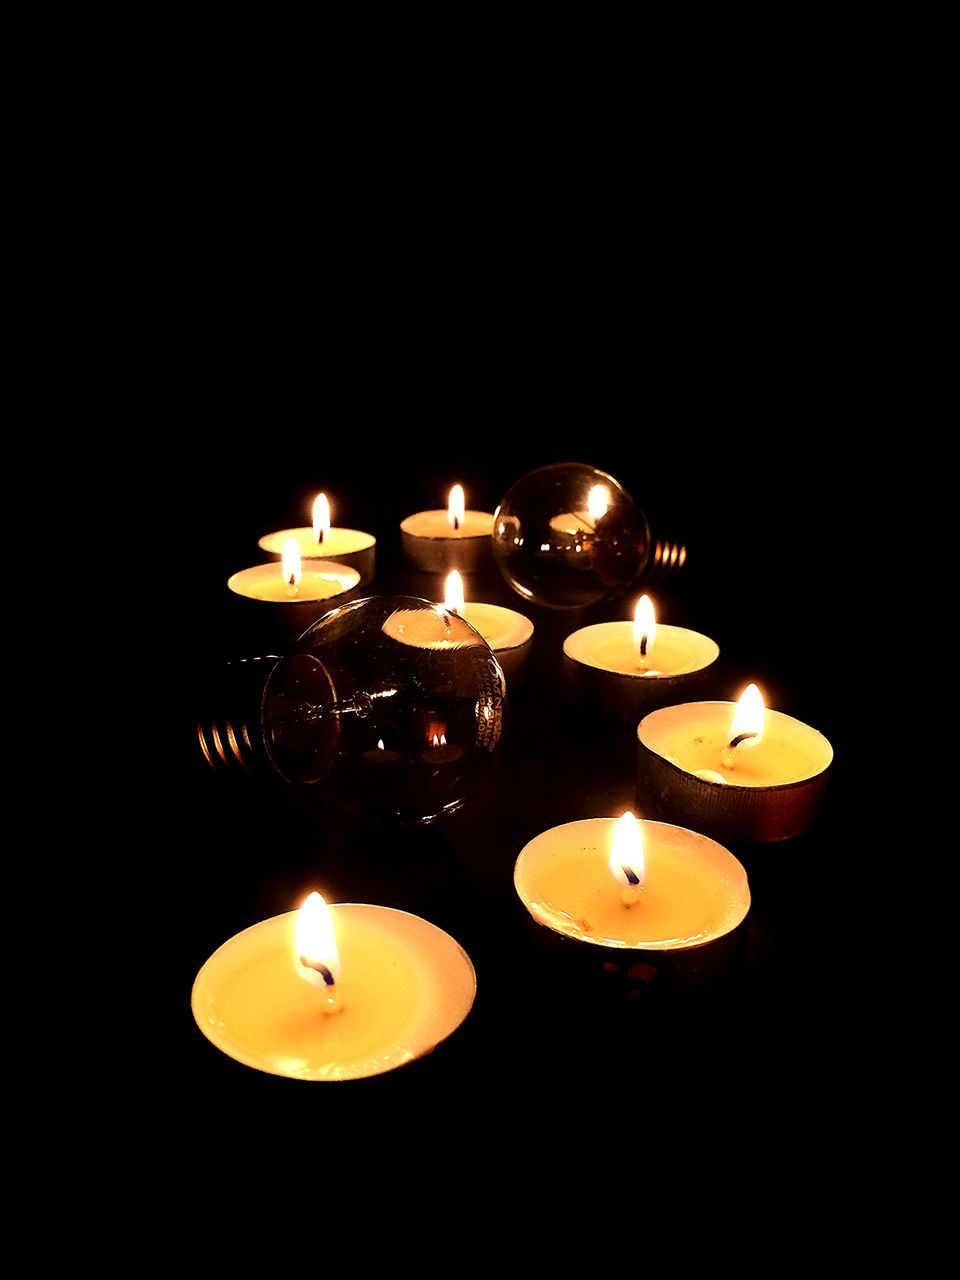 Close-Up Of Lit Candles And Light Bulb